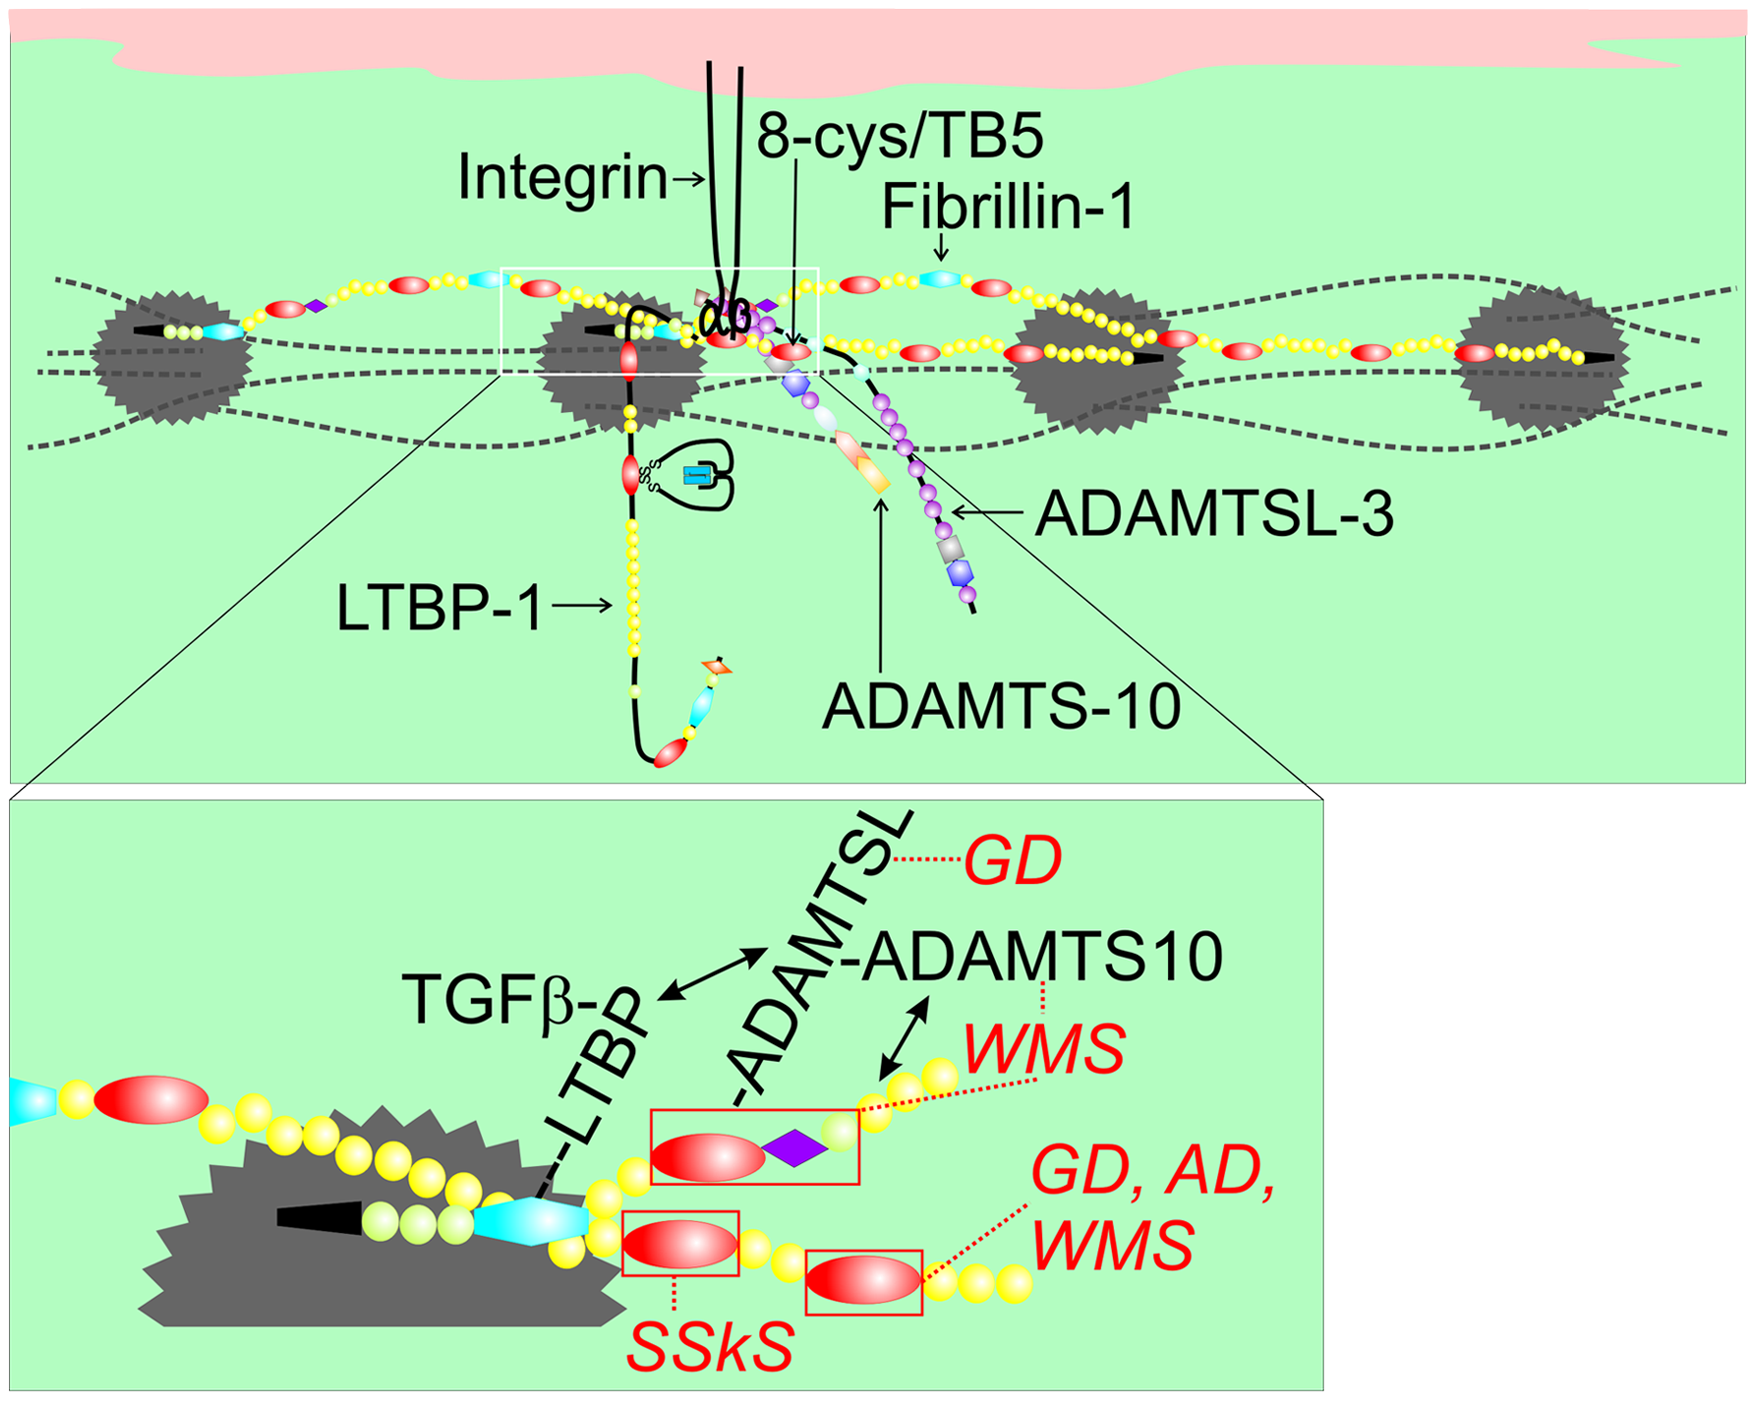 Model of fibrillin-1 containing microfibrils showing the locations of binding sites for ADAMTSL proteins, LTBP-1, and integrins.